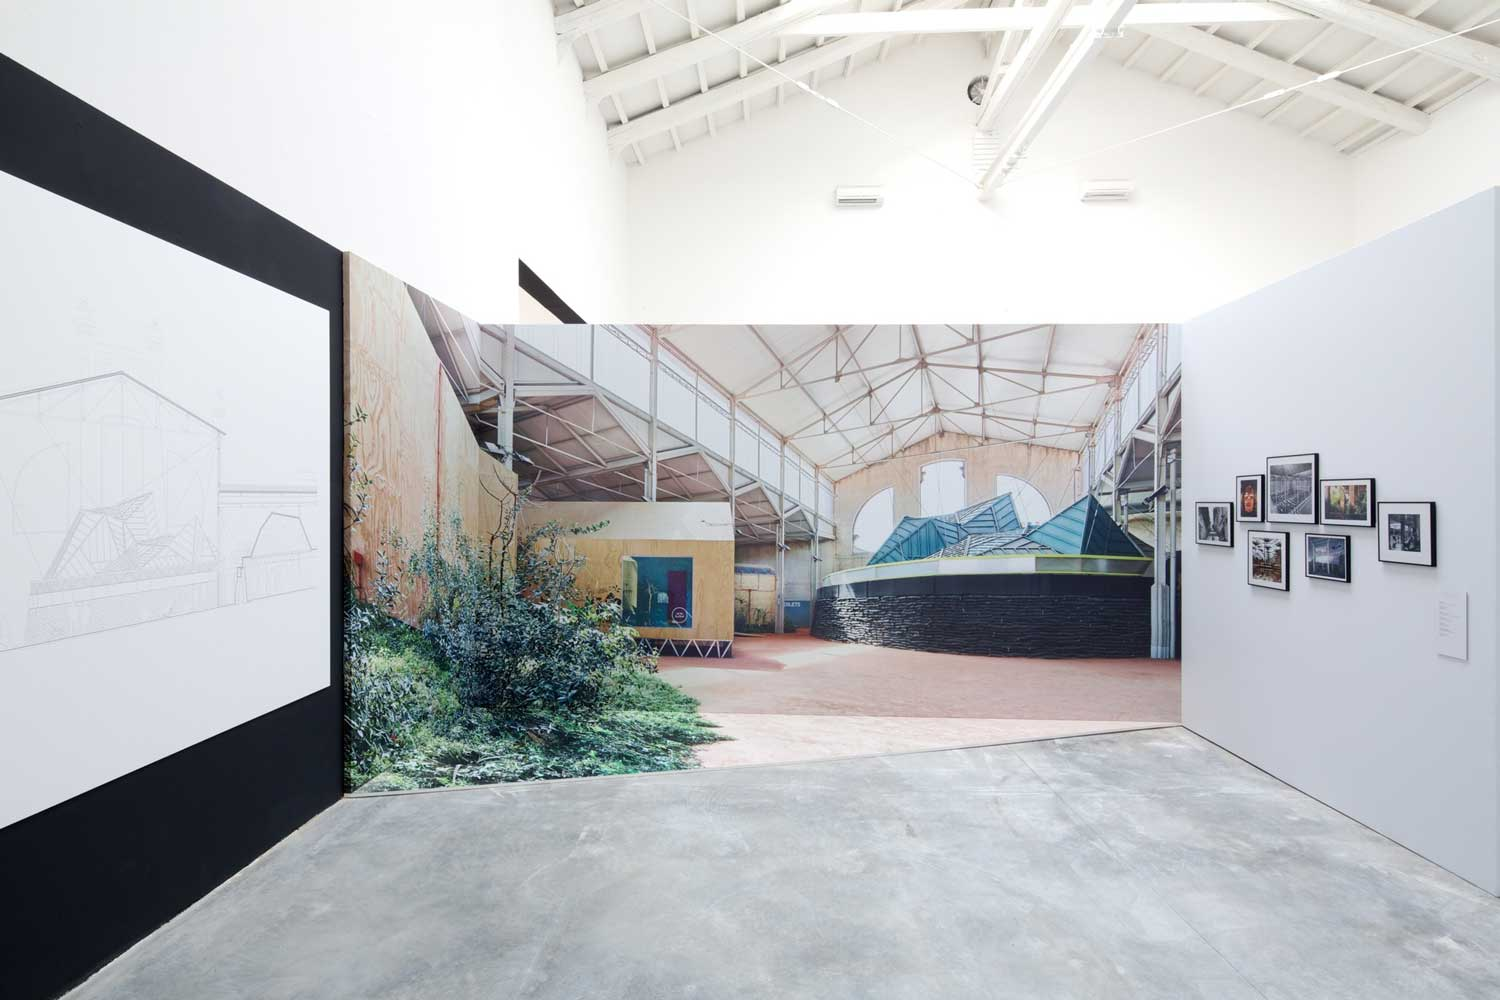 Spanish Pavilion by Aki Balos at the Venice Biennale 2014   Yellowtrace